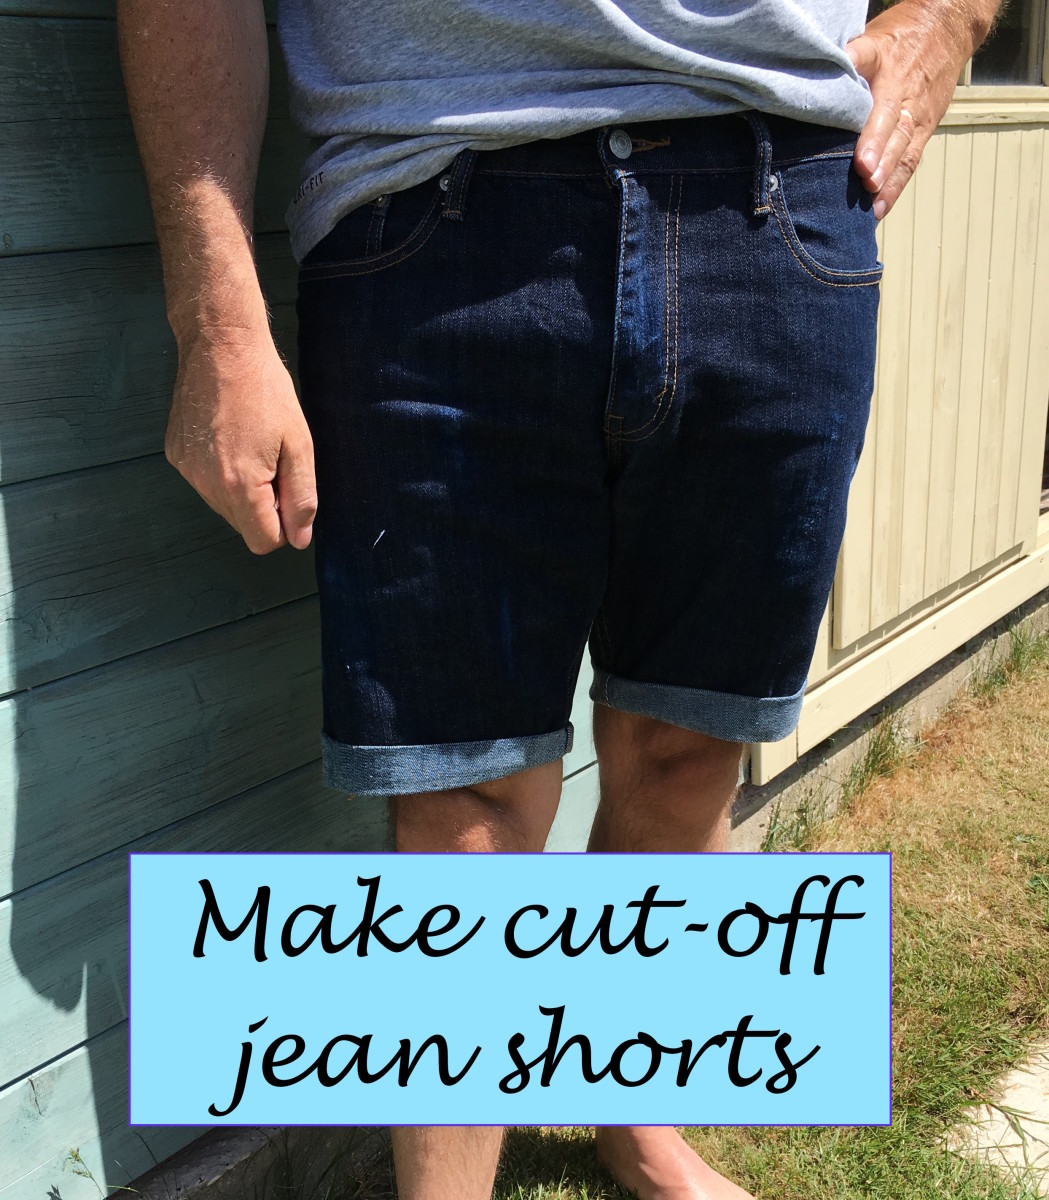 Try your cut-off jeans shorts on. Look in the mirror to make sure both legs of your shorts end are the same length. Trim the legs of the shorts to make them the same length or further shorten, if necessary.